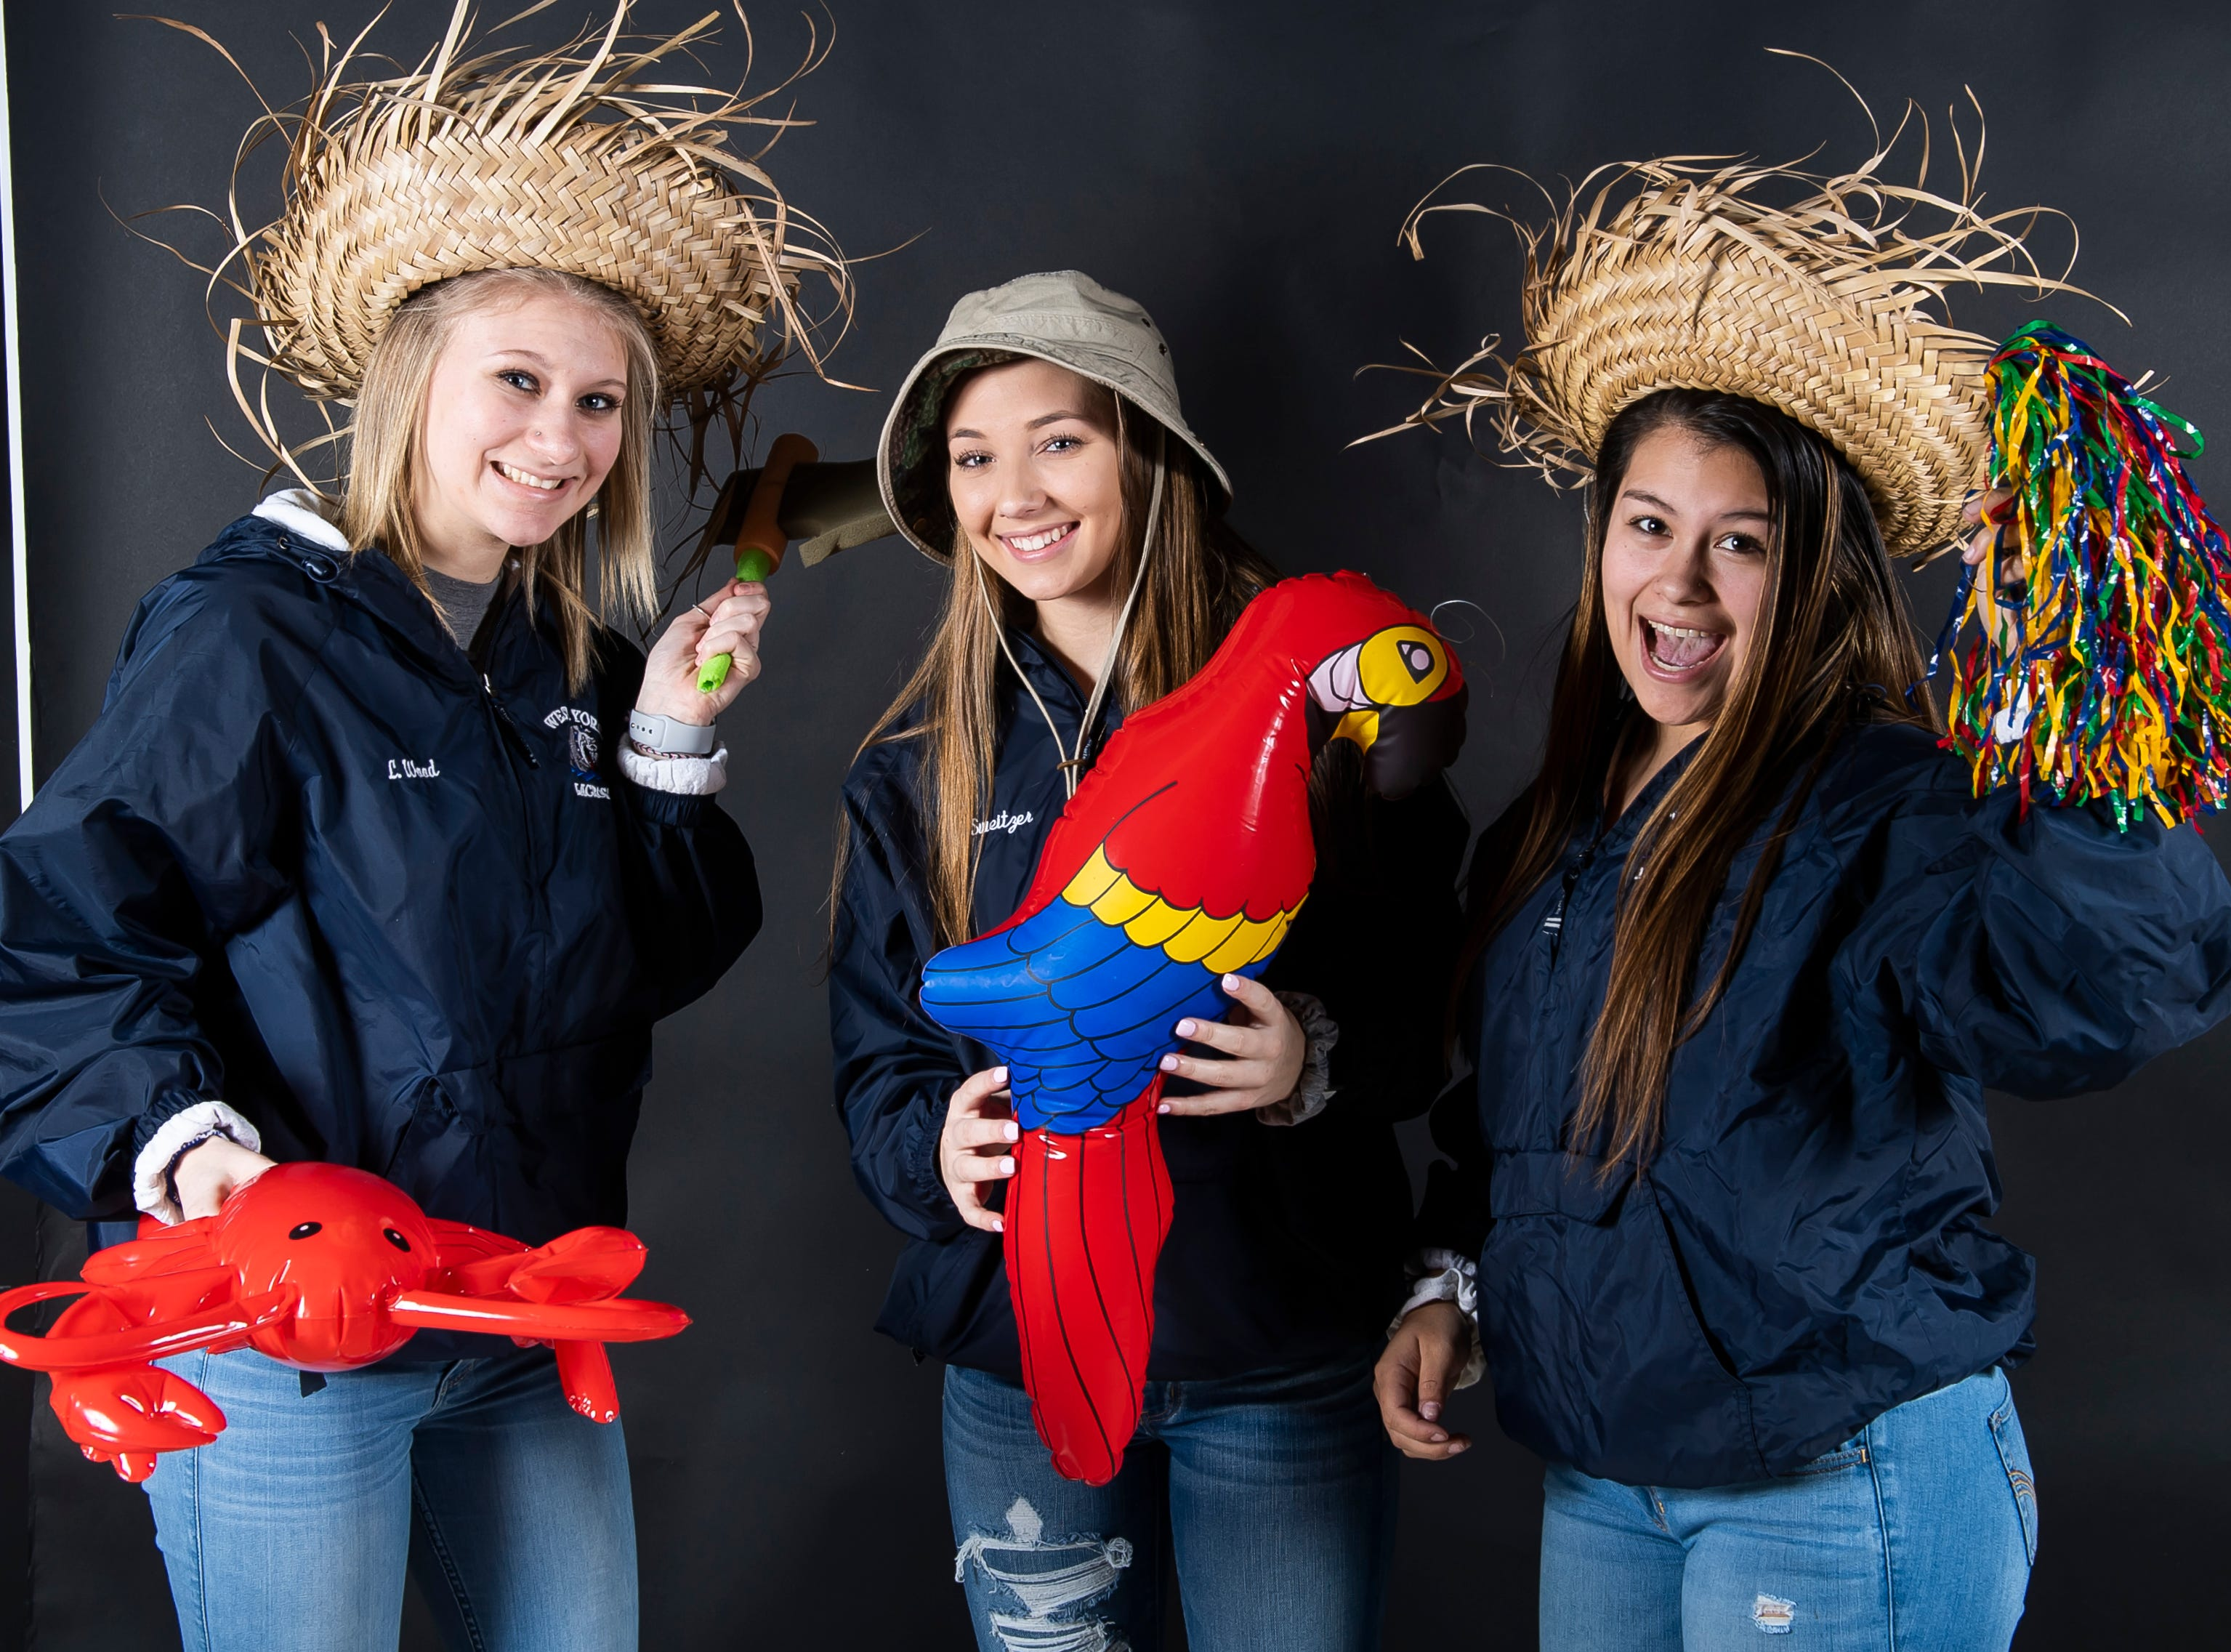 (From left) West York lacrosse players Lizzie Wood, Sydney Sweitzer and Libby Bahoric strike a pose in the GameTimePA photo booth during spring sports media day in York Sunday, March 10, 2019.